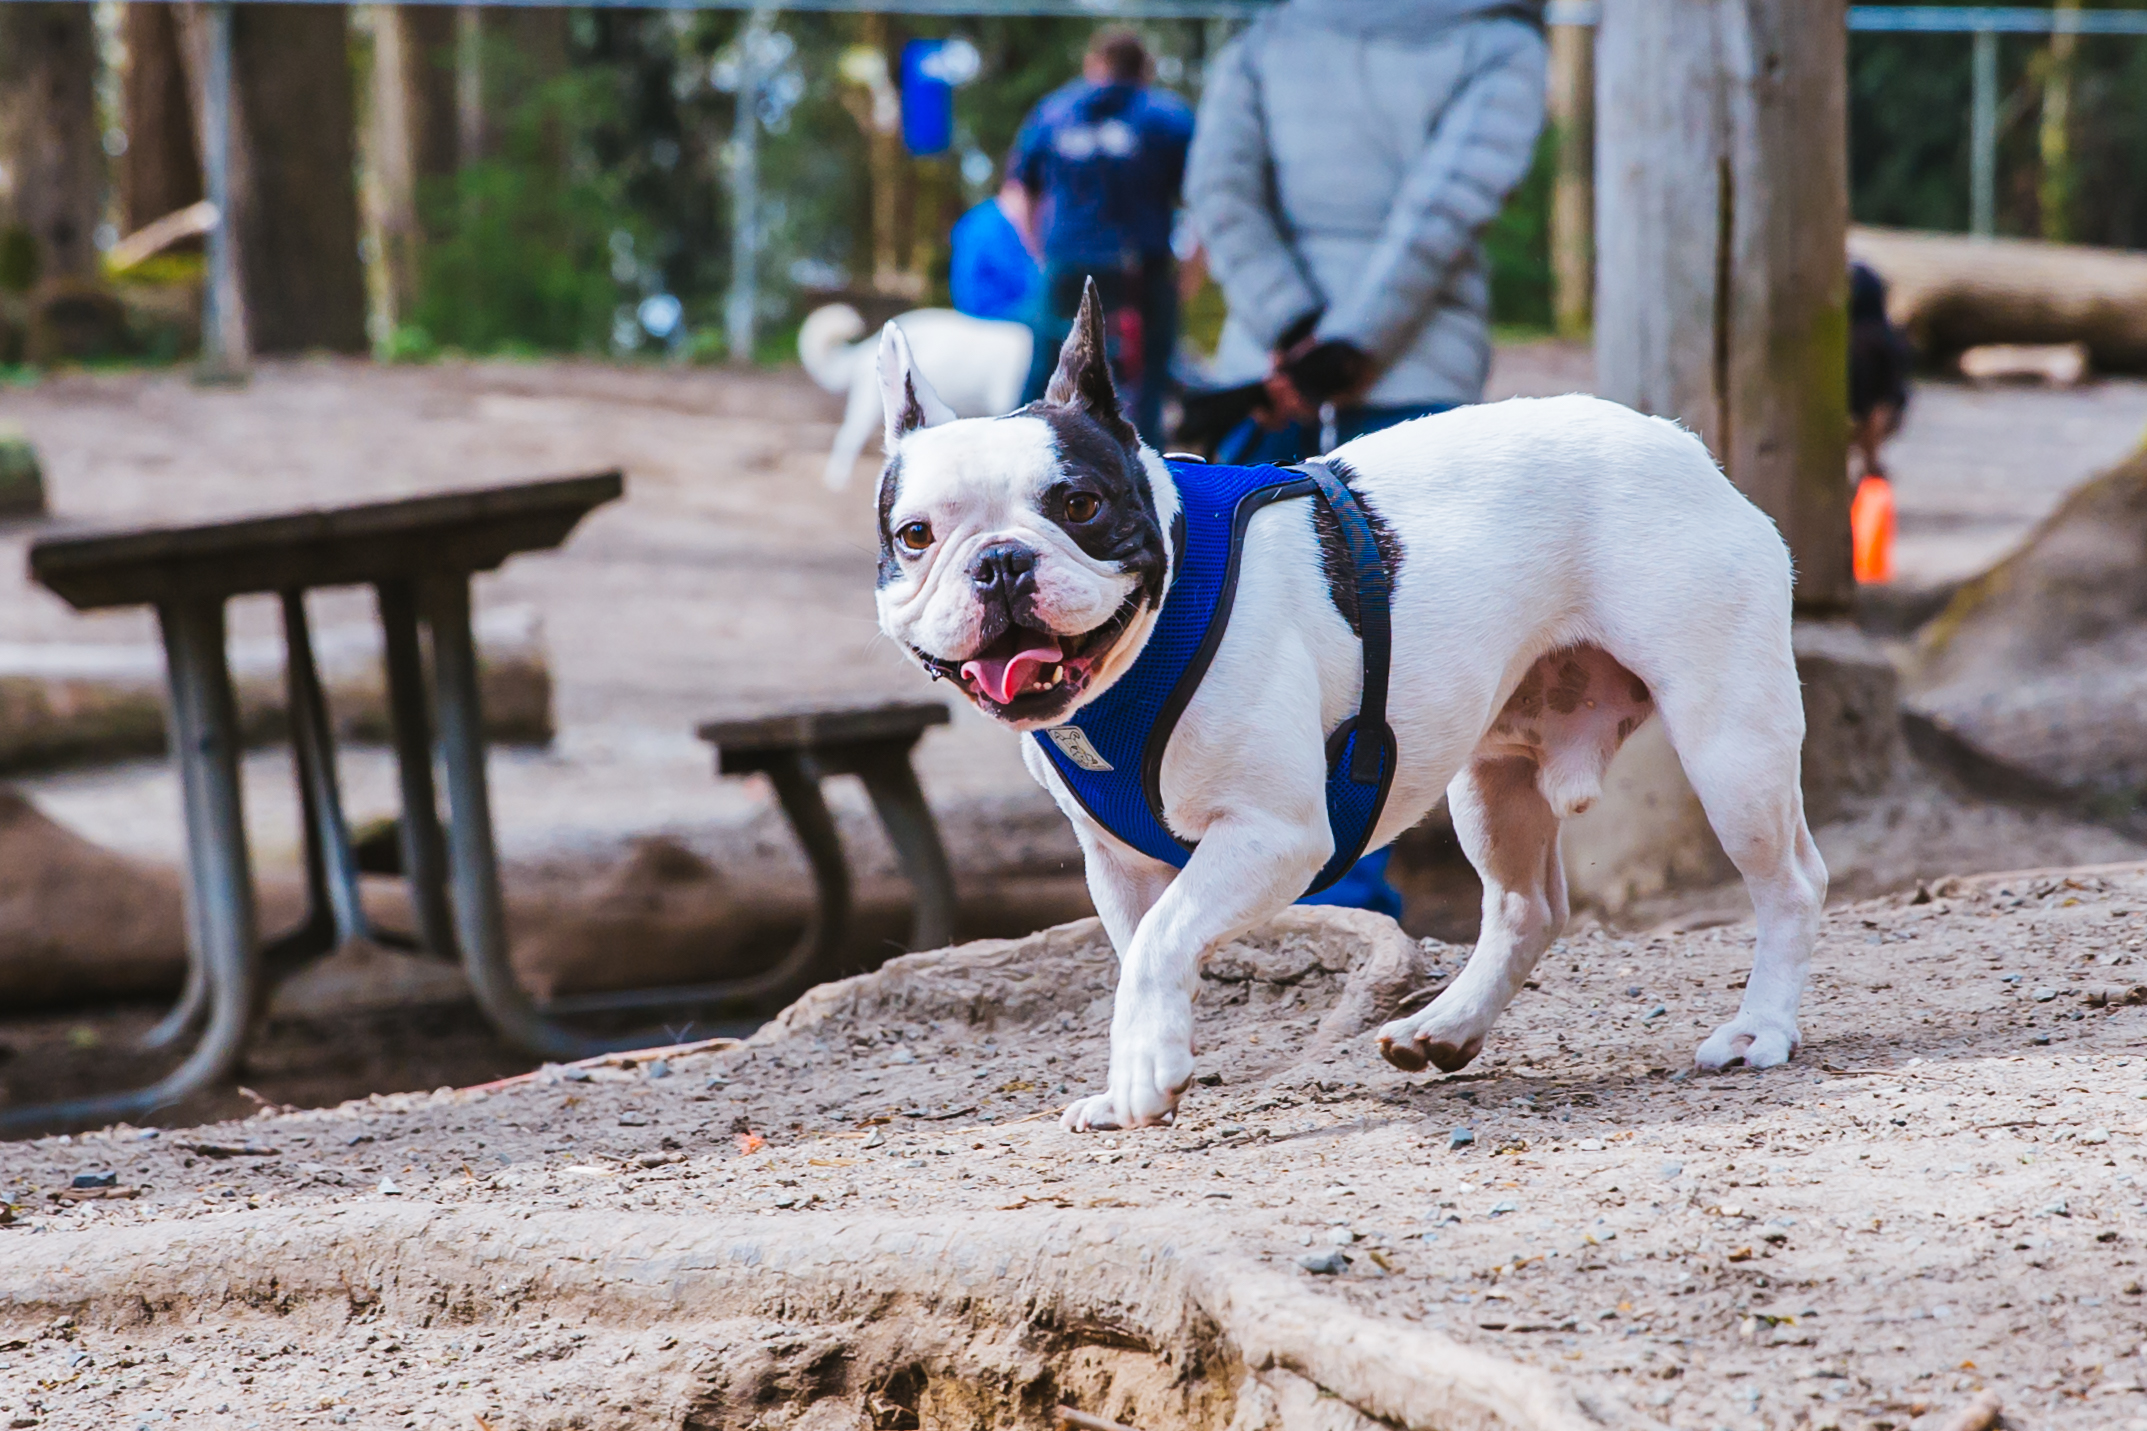 Our RUFFined Spotlight this week is a little different than usual - and that's thanks to this mug right here. Meet Johnny Cash the Frenchie! (Image: Sunita Martini)